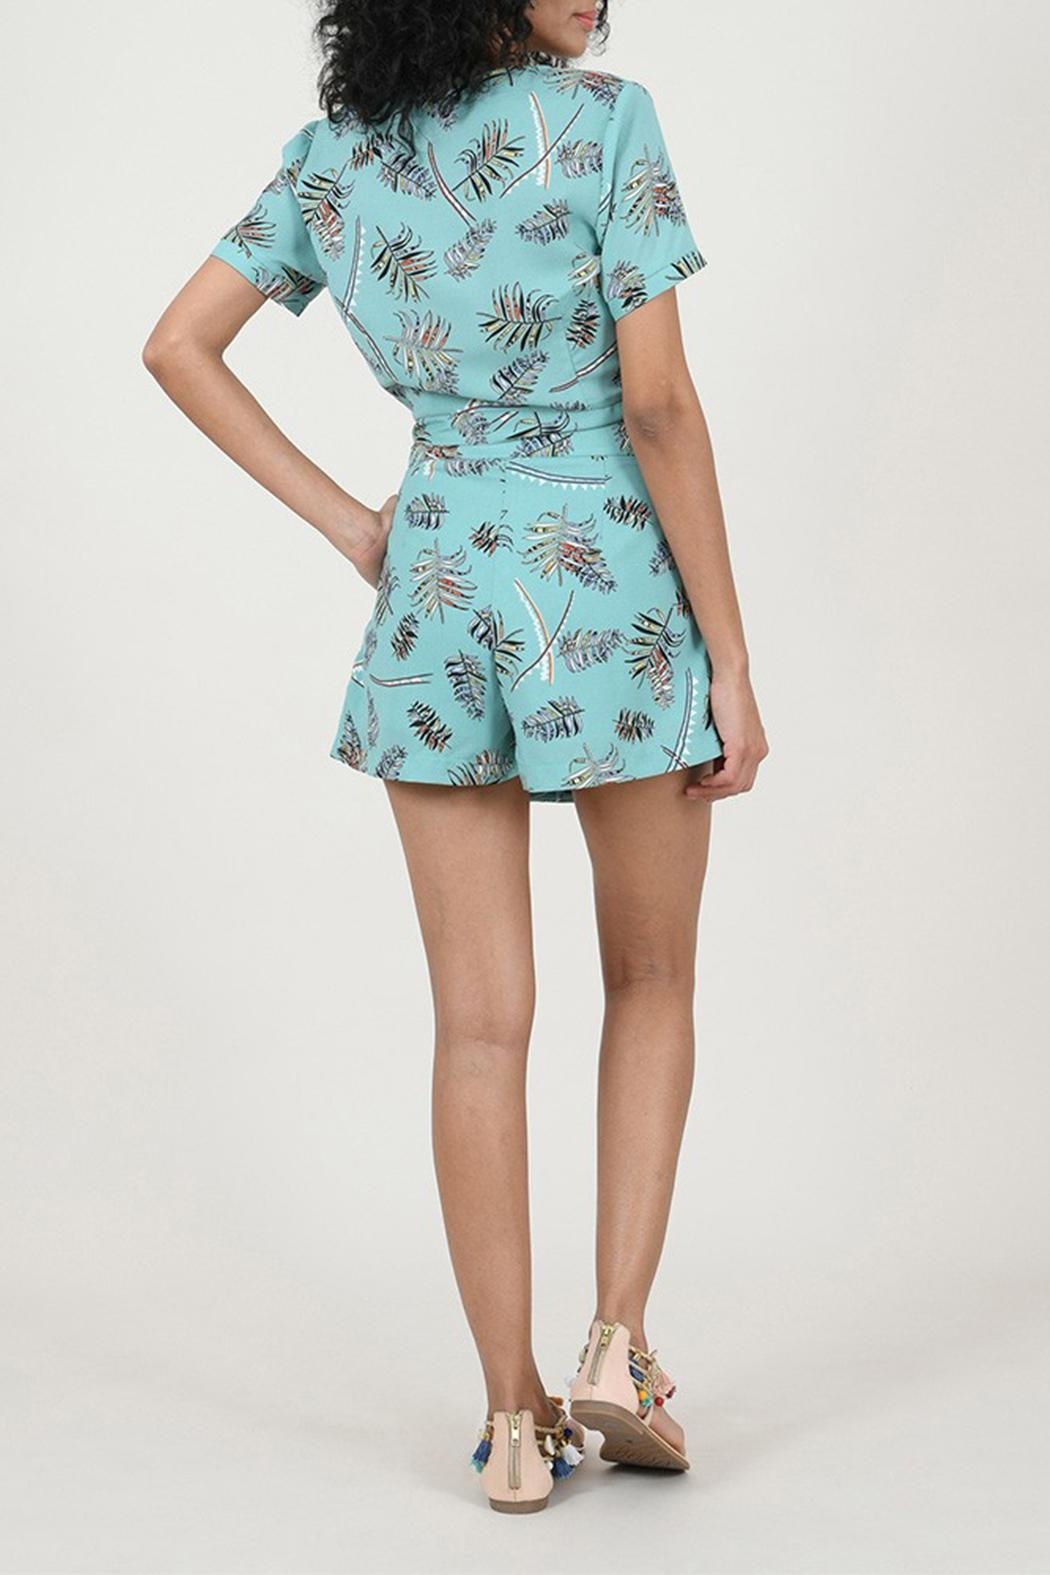 Molly Bracken Printed Top - Side Cropped Image